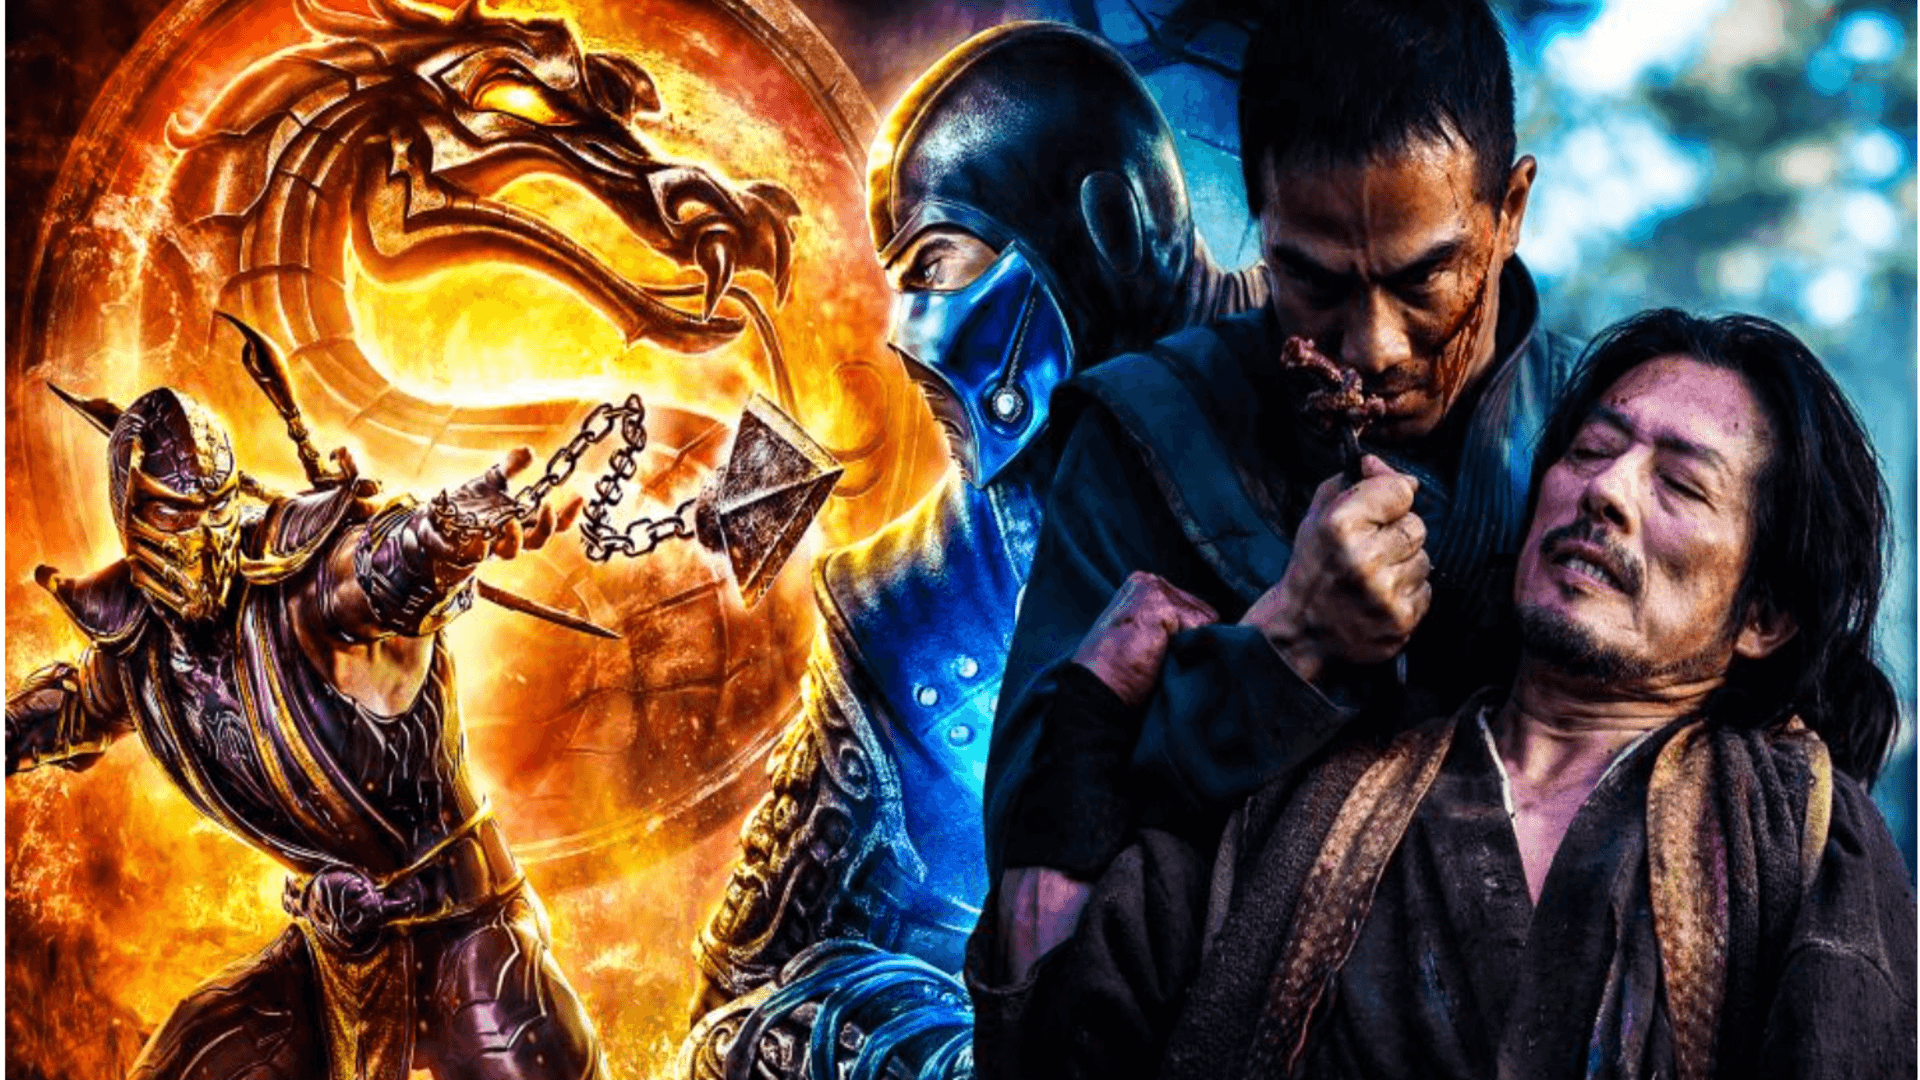 Mortal Kombat Movie Launches New Trailer: Here is What We Know